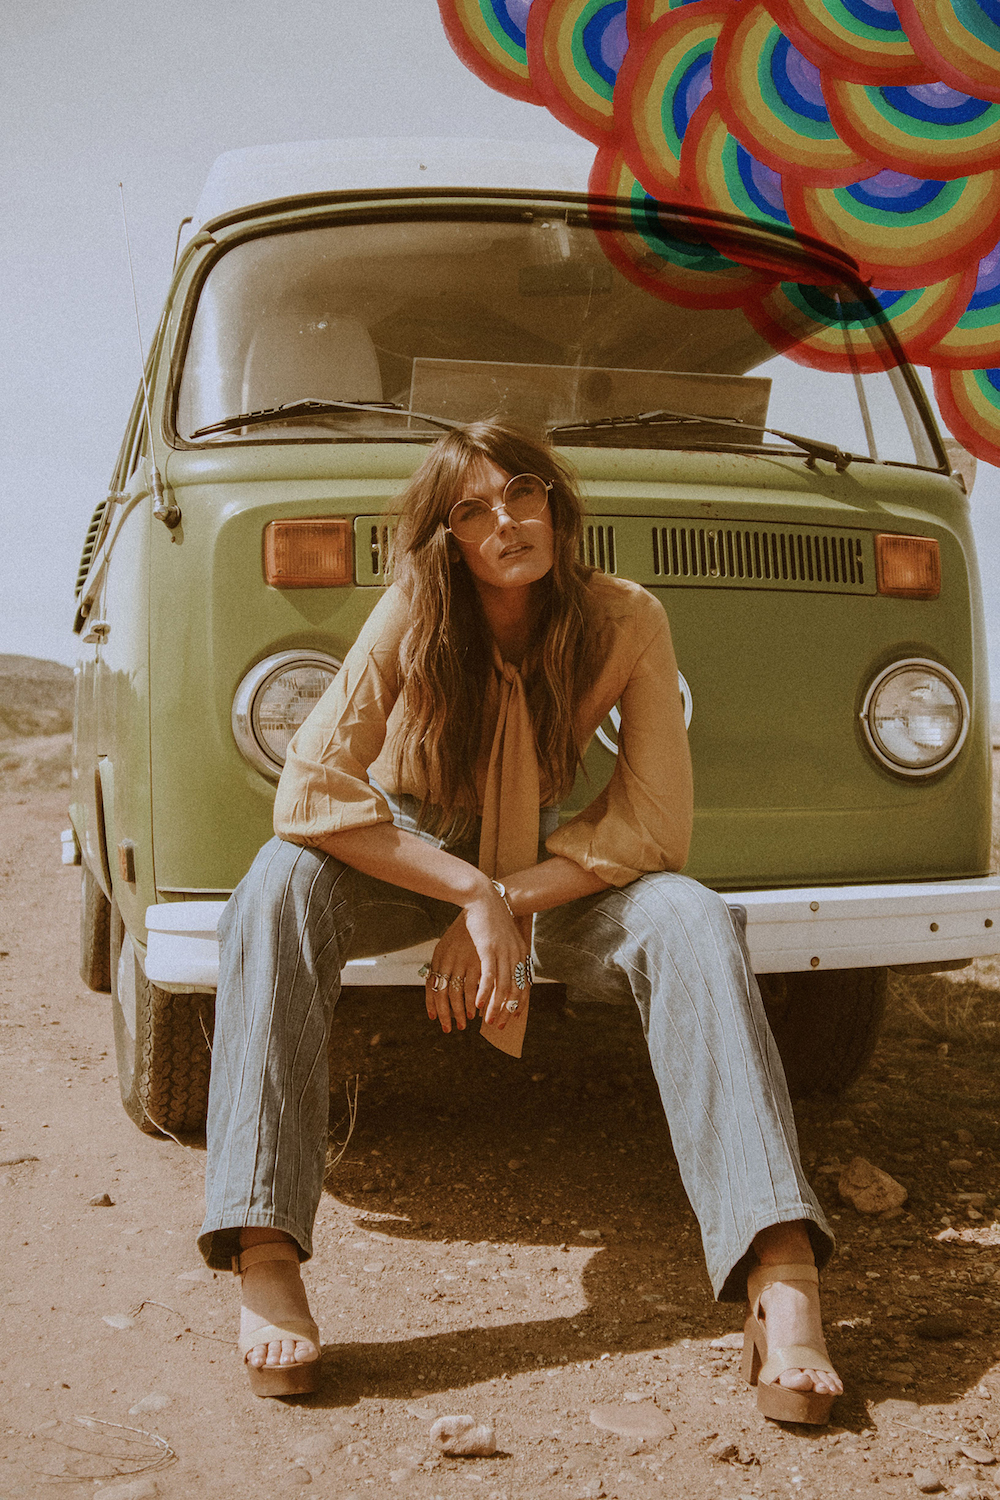 SUGARHIGH LOVESTONED, VW BUG LOVE, DESERT VIBES - THE EDIT HAWAII